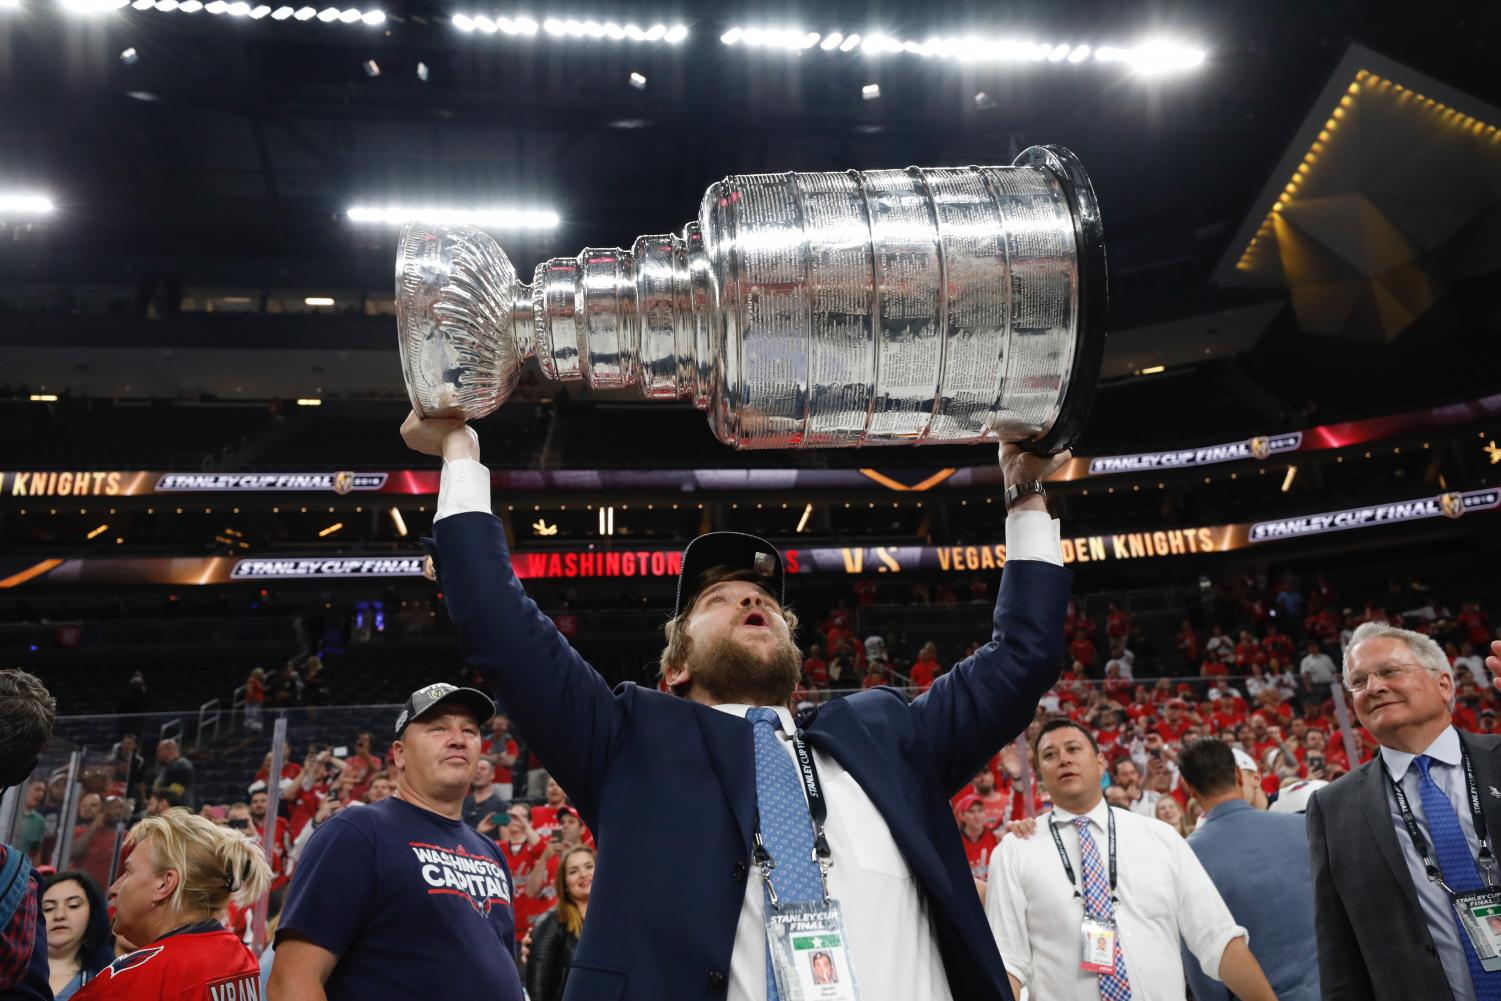 James Heuser, Class of 2004, is the Senior Director of Digital Media for the Washington Capitals.